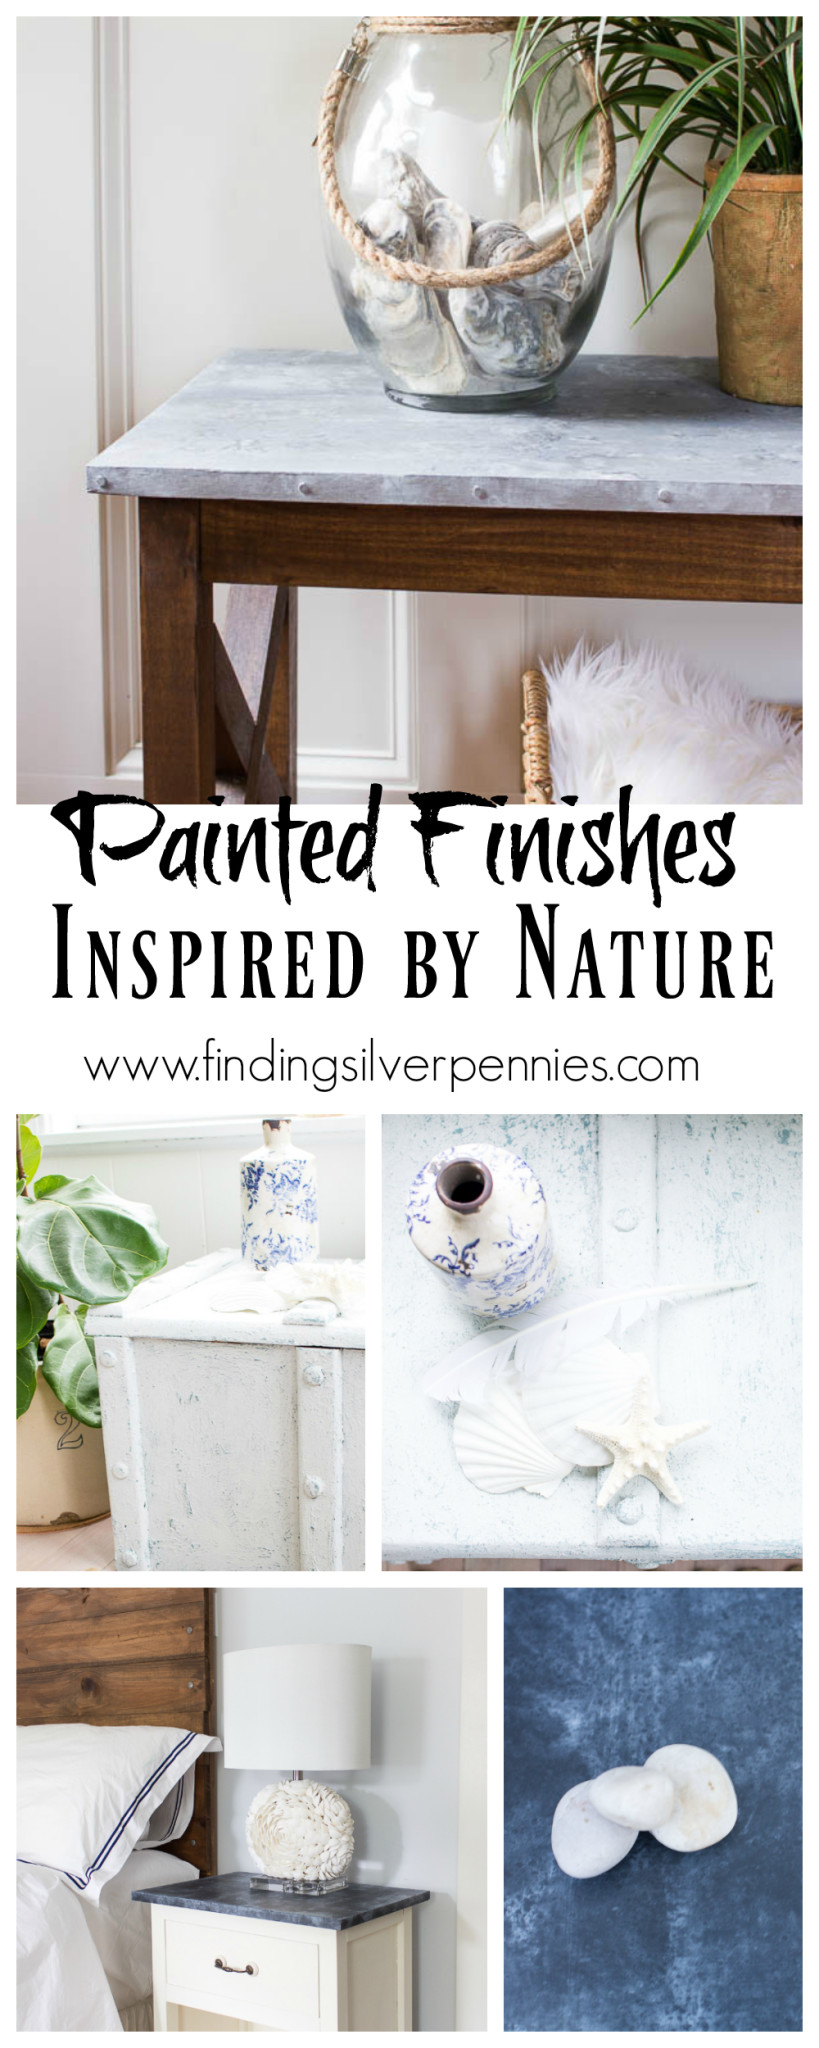 Painted Finishes Inspired by Nature by Finding Silver Pennies